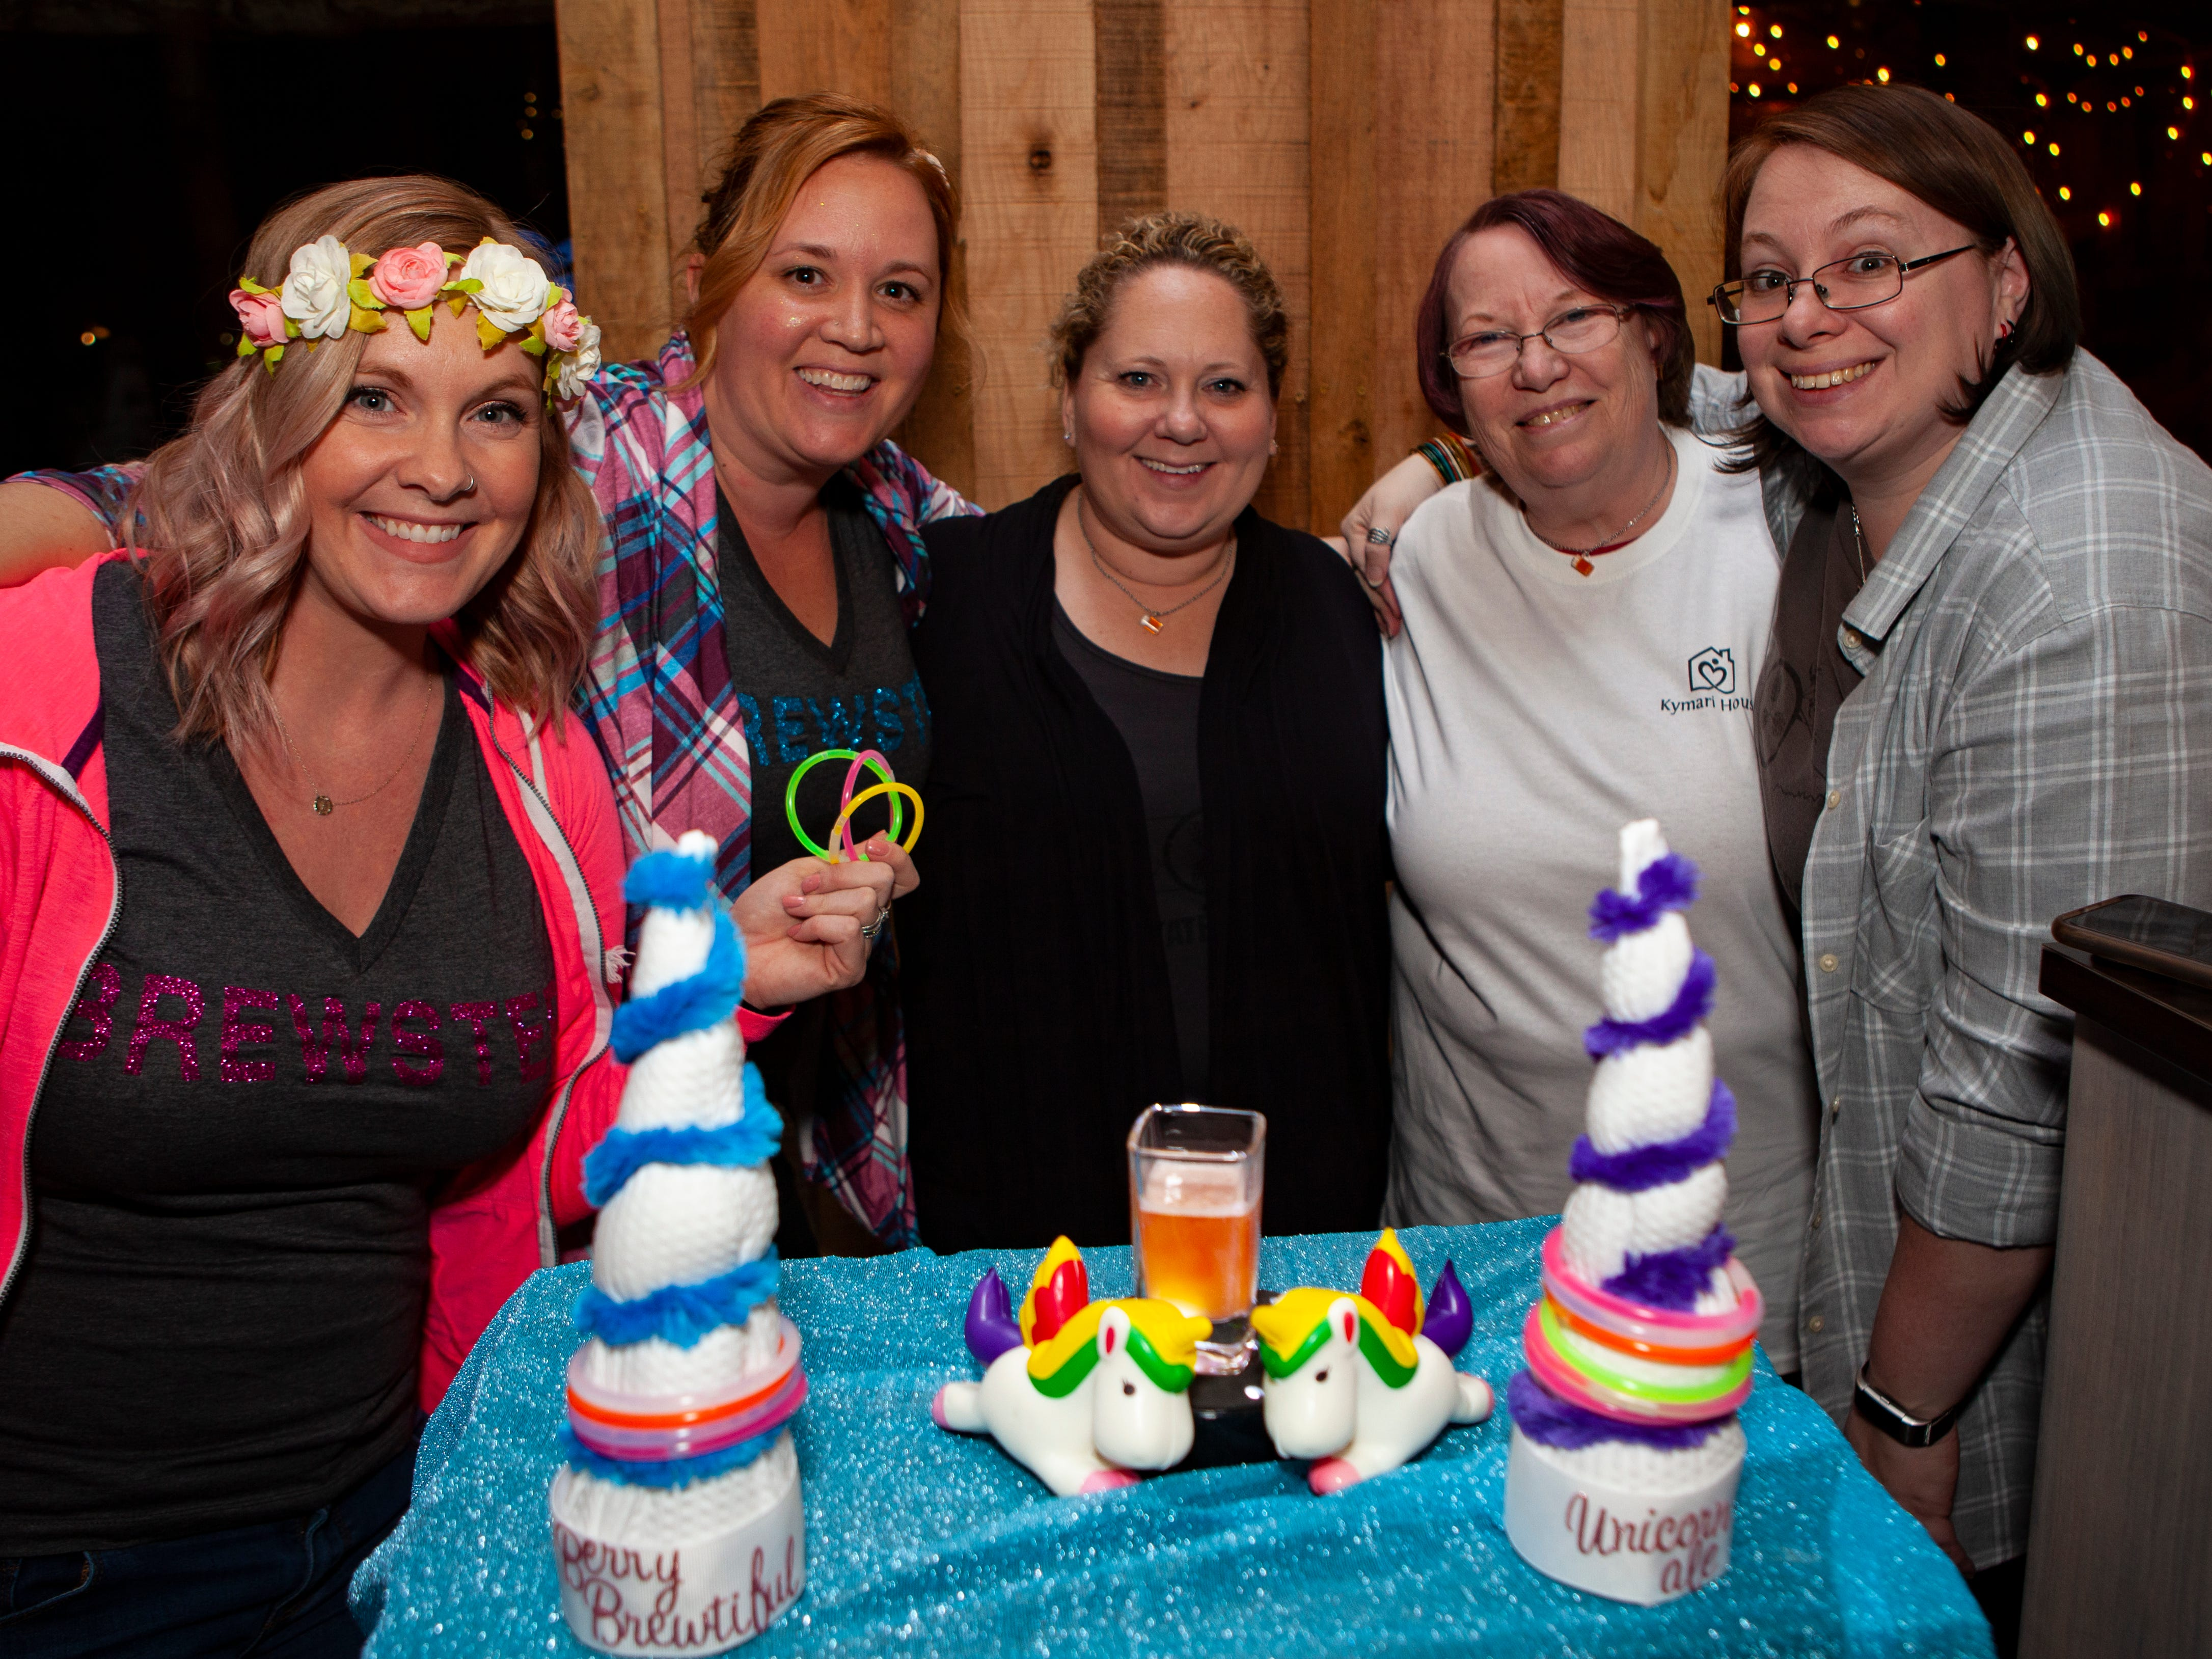 Cassie Ashbey, Alicia Kunkle, Tricia Pohlman, Linda  and Amanda Bimson at the third annual Battle of the Brews, a benefit for Kymari House Inc., held Saturday, Feb. 9, 2019 at The Grove at Williamson Place in Murfreesboro.